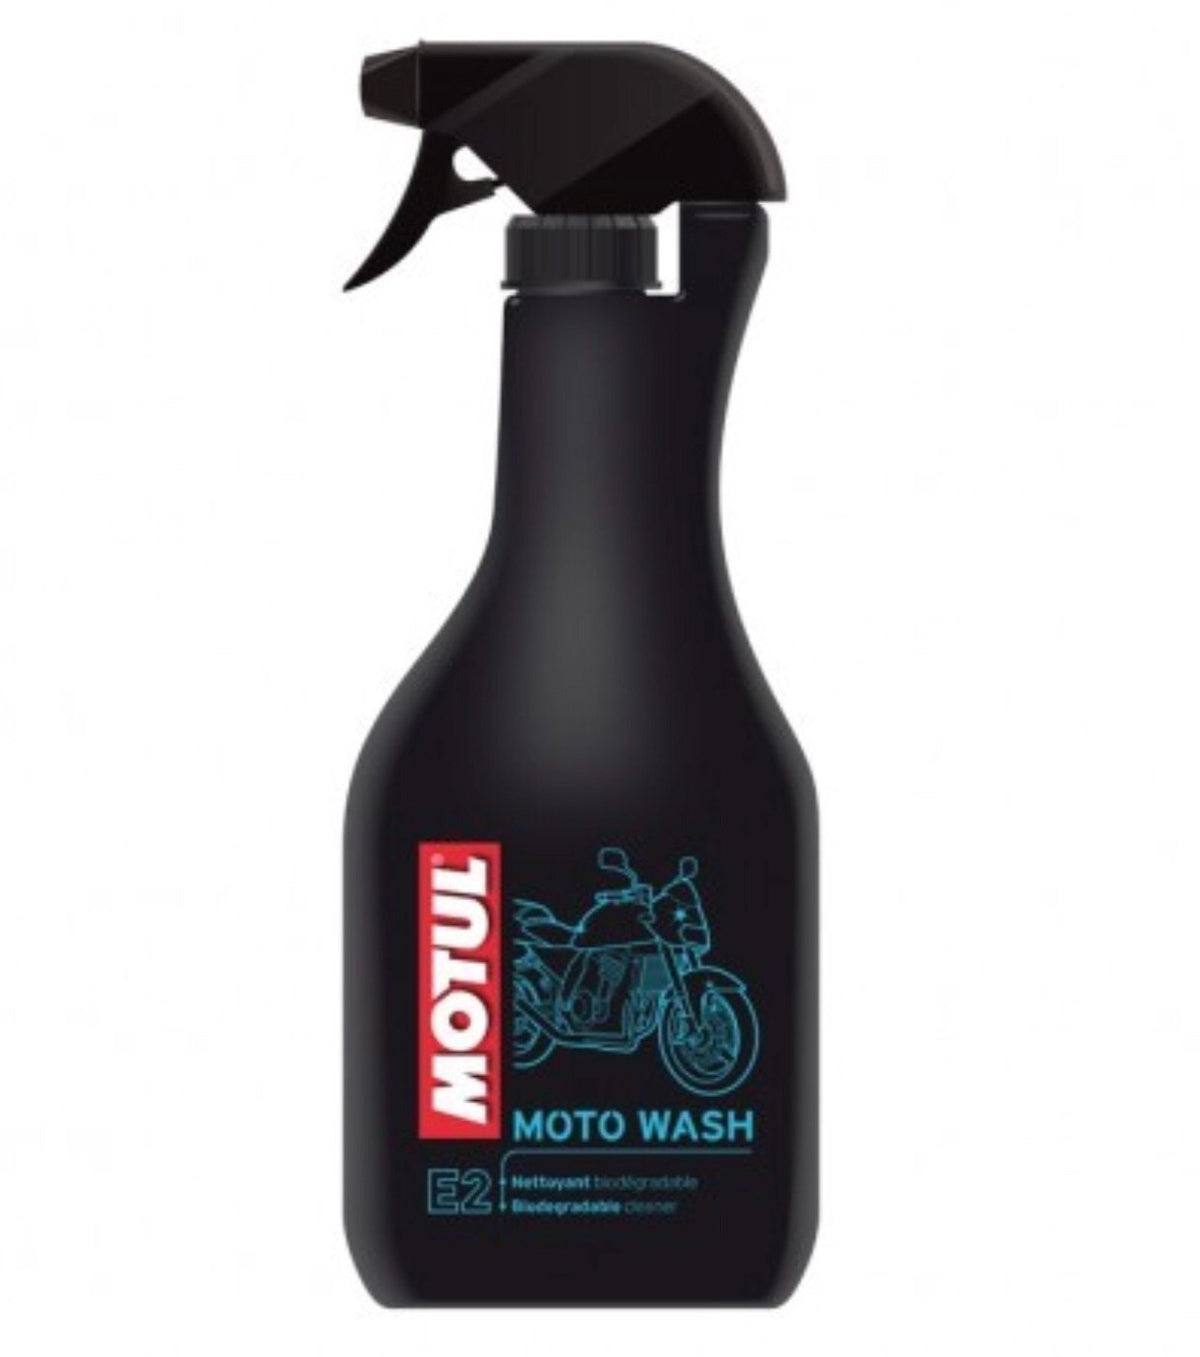 E2 Moto Wash, Bike cleaner, Motul - Averys Motorcycles